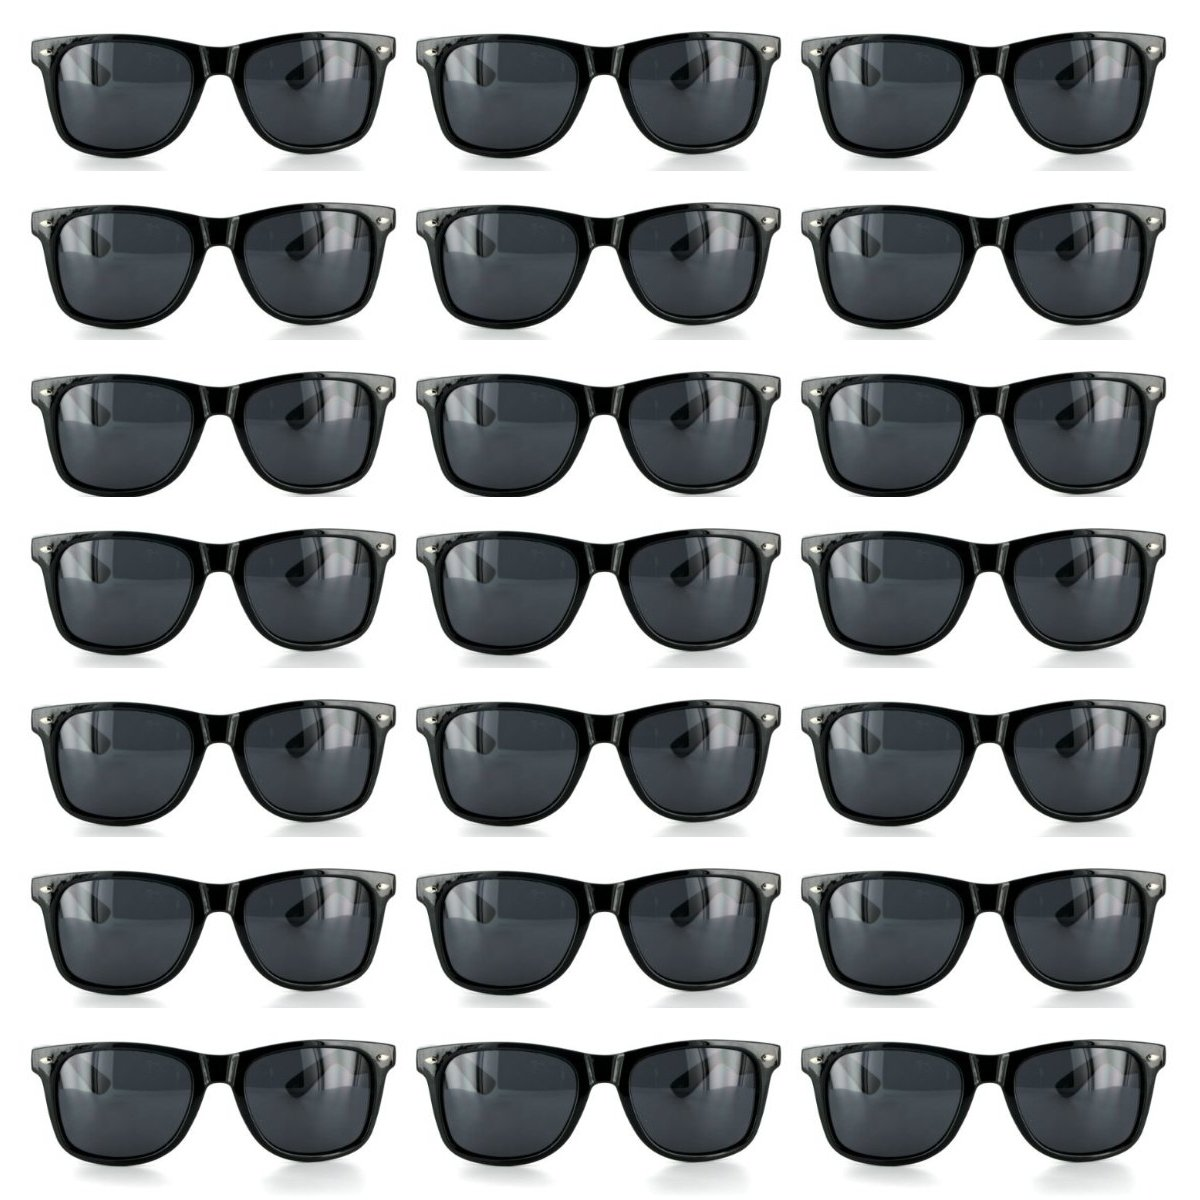 Case of 120 Black Sunglasses Retro Horn Rimmed Frame Party Favors by MJ EYEWEAR